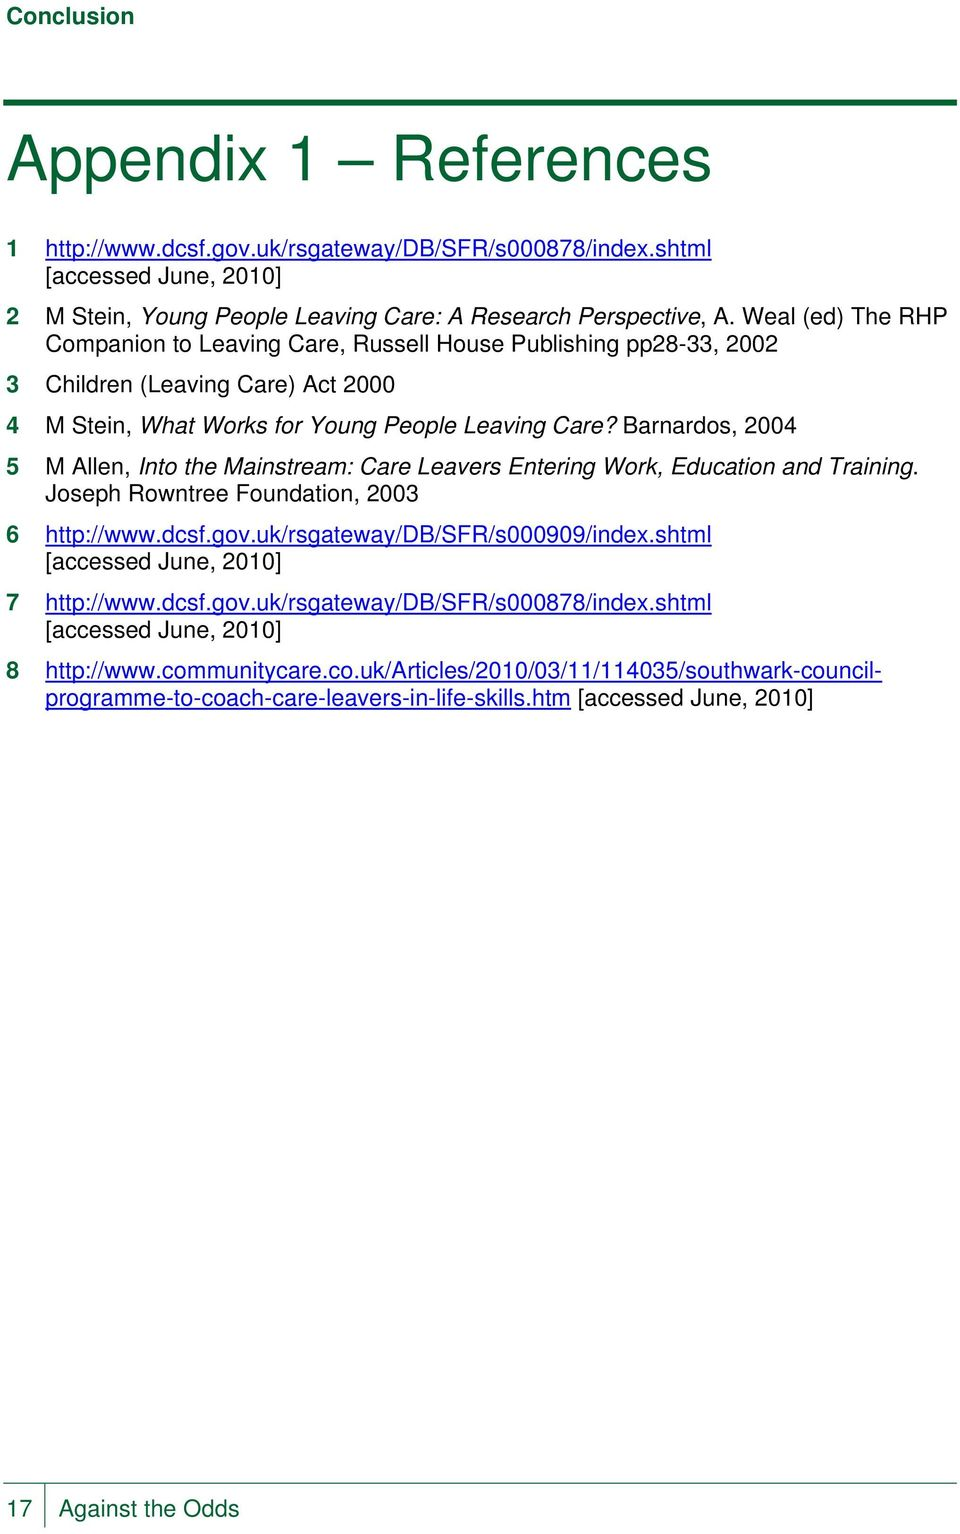 Barnardos, 2004 5 M Allen, Into the Mainstream: Care Leavers Entering Work, Education and Training. Joseph Rowntree Foundation, 2003 6 http://www.dcsf.gov.uk/rsgateway/db/sfr/s000909/index.